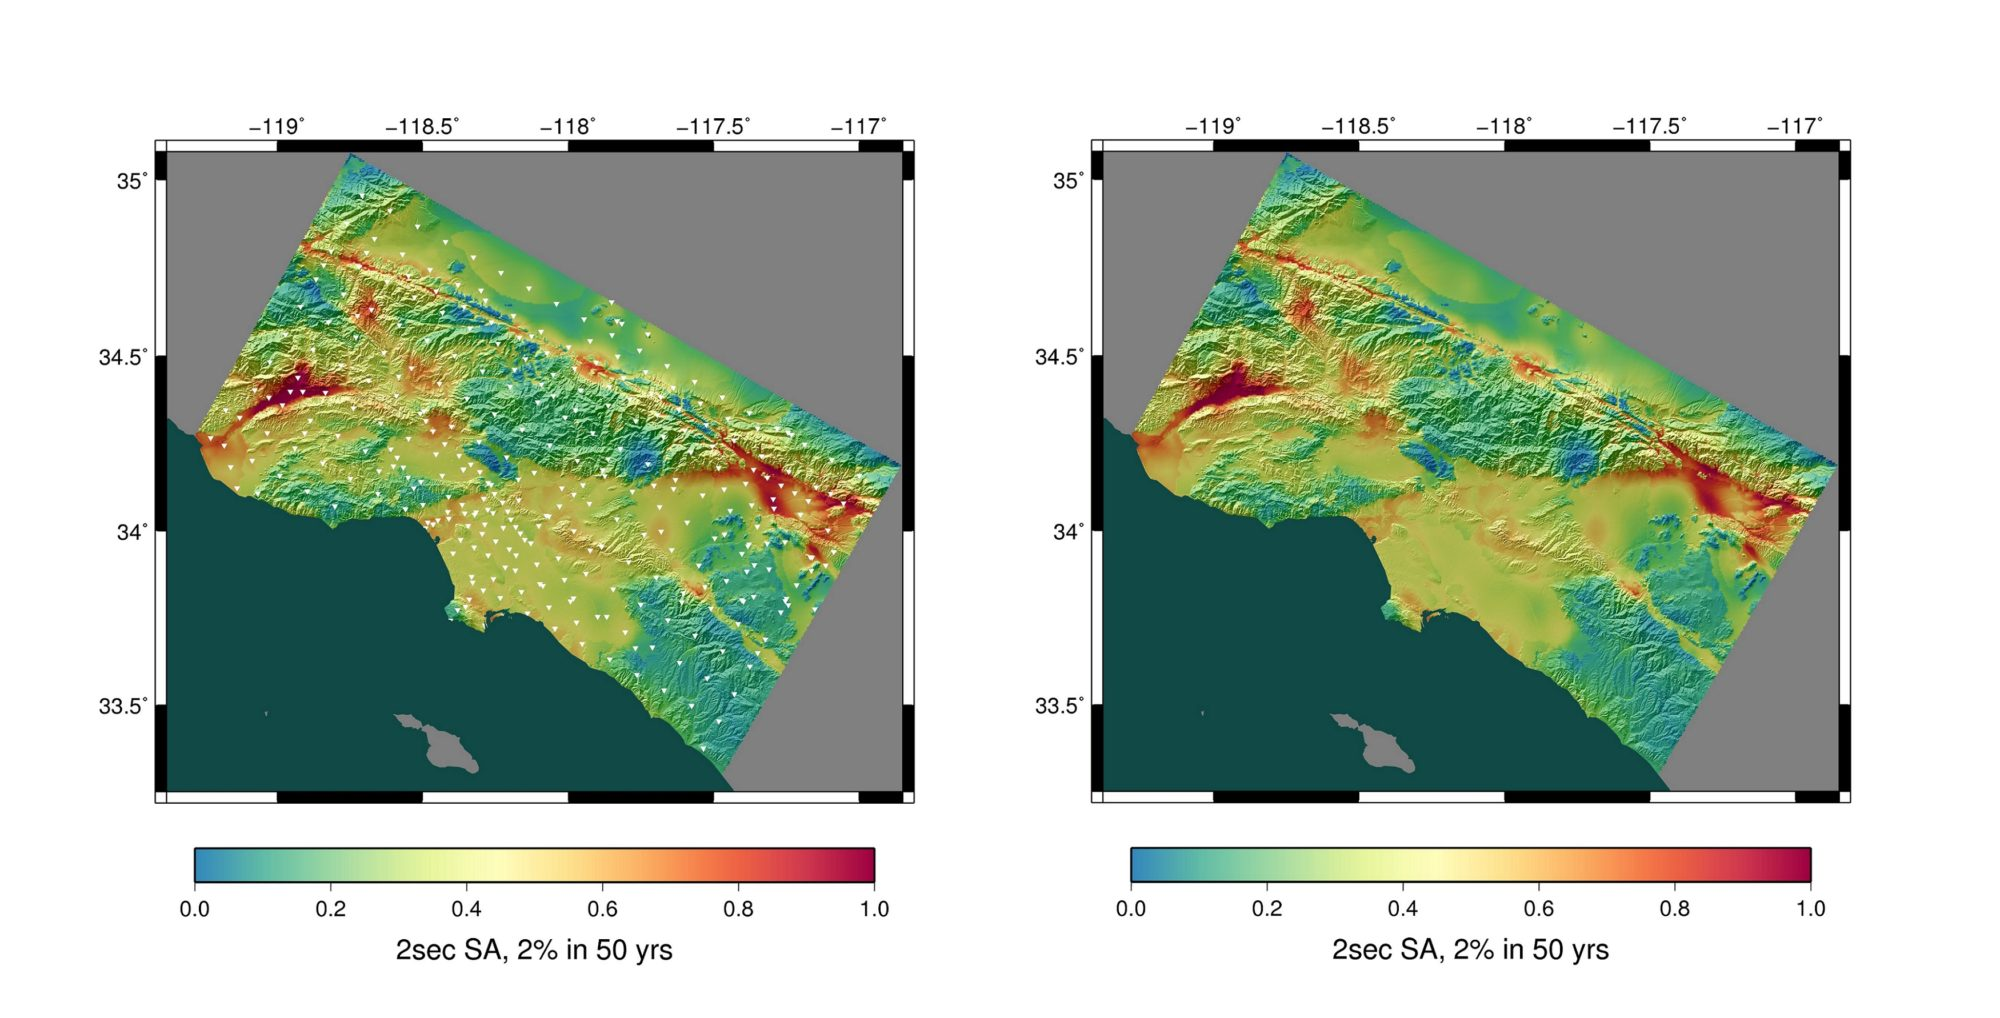 CyberShake Study 15.4 hazard map of Los Angeles basin with 336 sites marked with white triangles (on the left). Map displays the shaking intensity expected with a 2% probability in 50 years. Warm colors represent areas of high hazard.